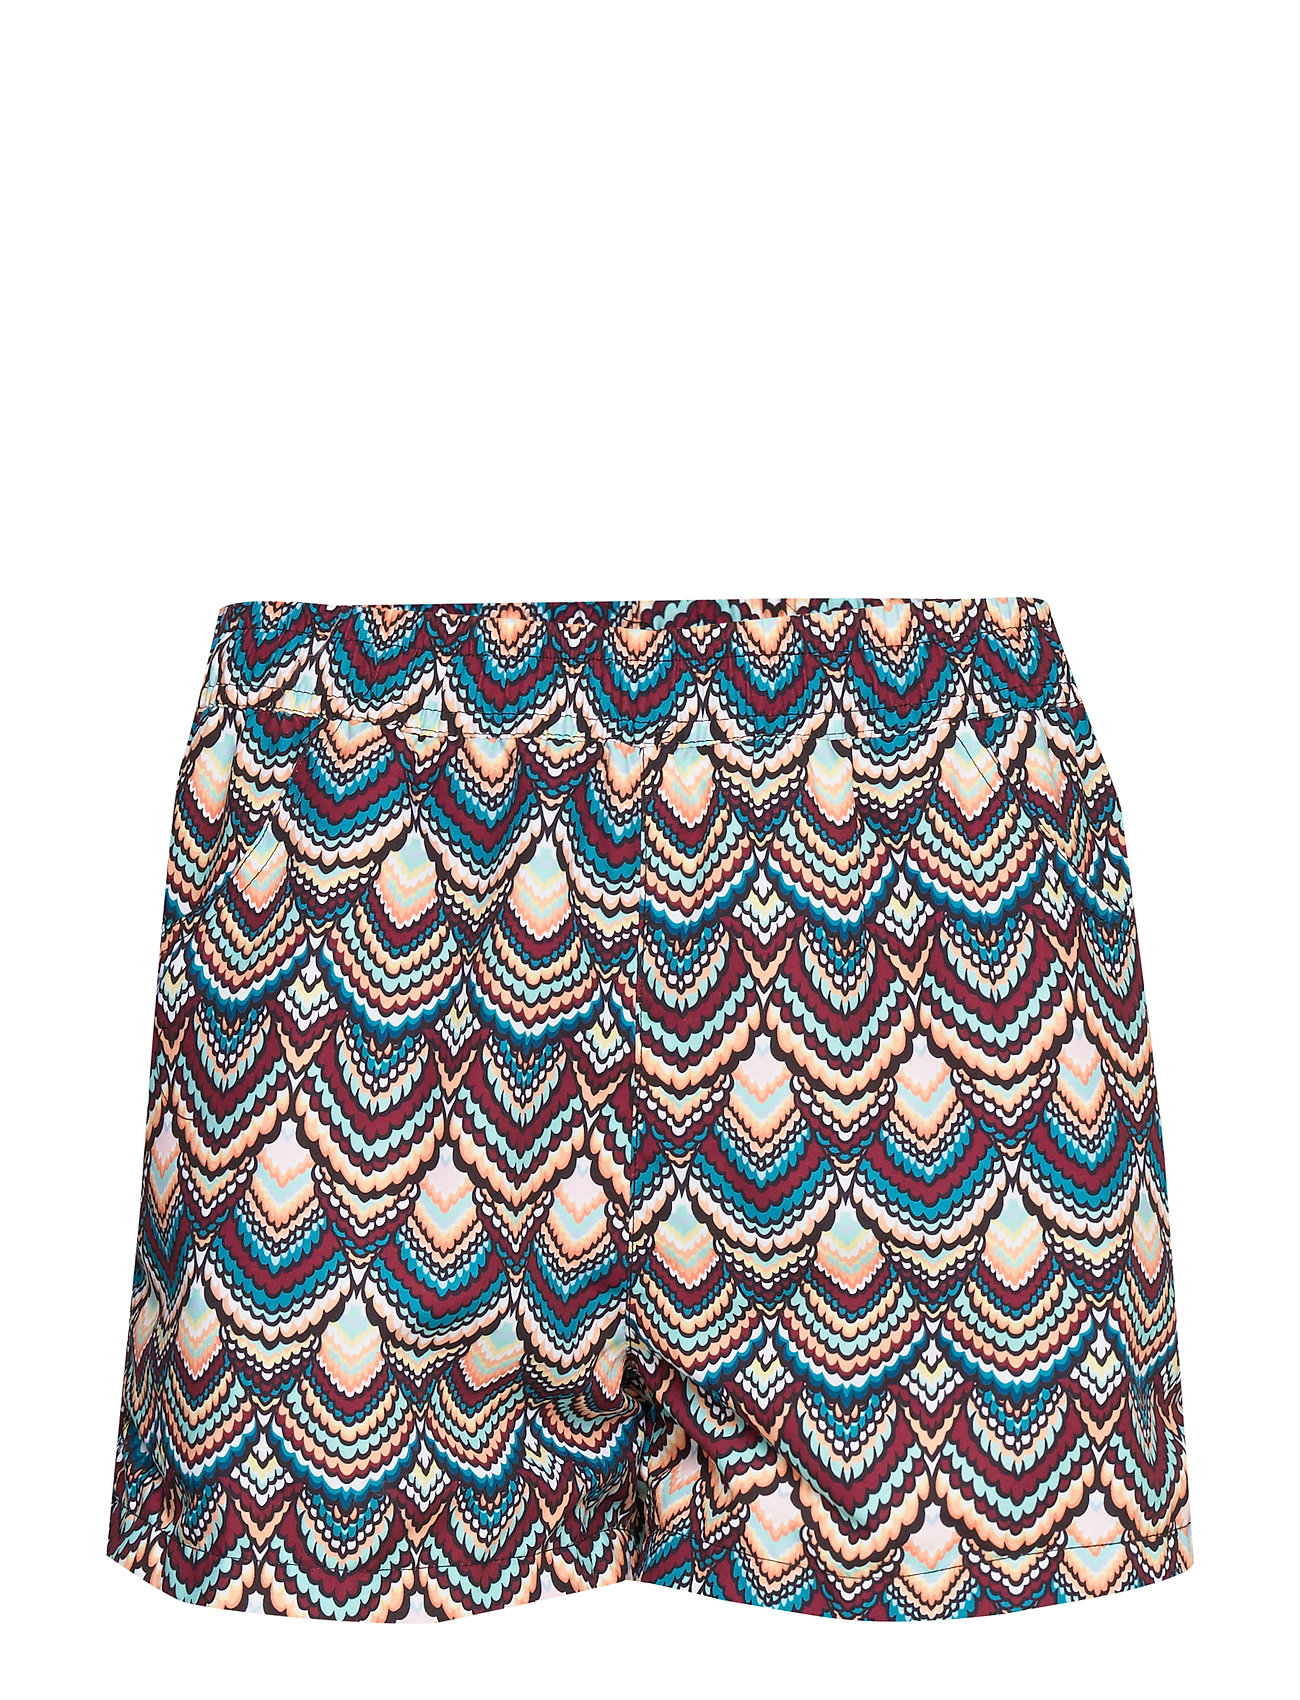 Image of Panos Ethnic Lucca Shorts Badetøj Multi/mønstret Panos Emporio (3347377327)